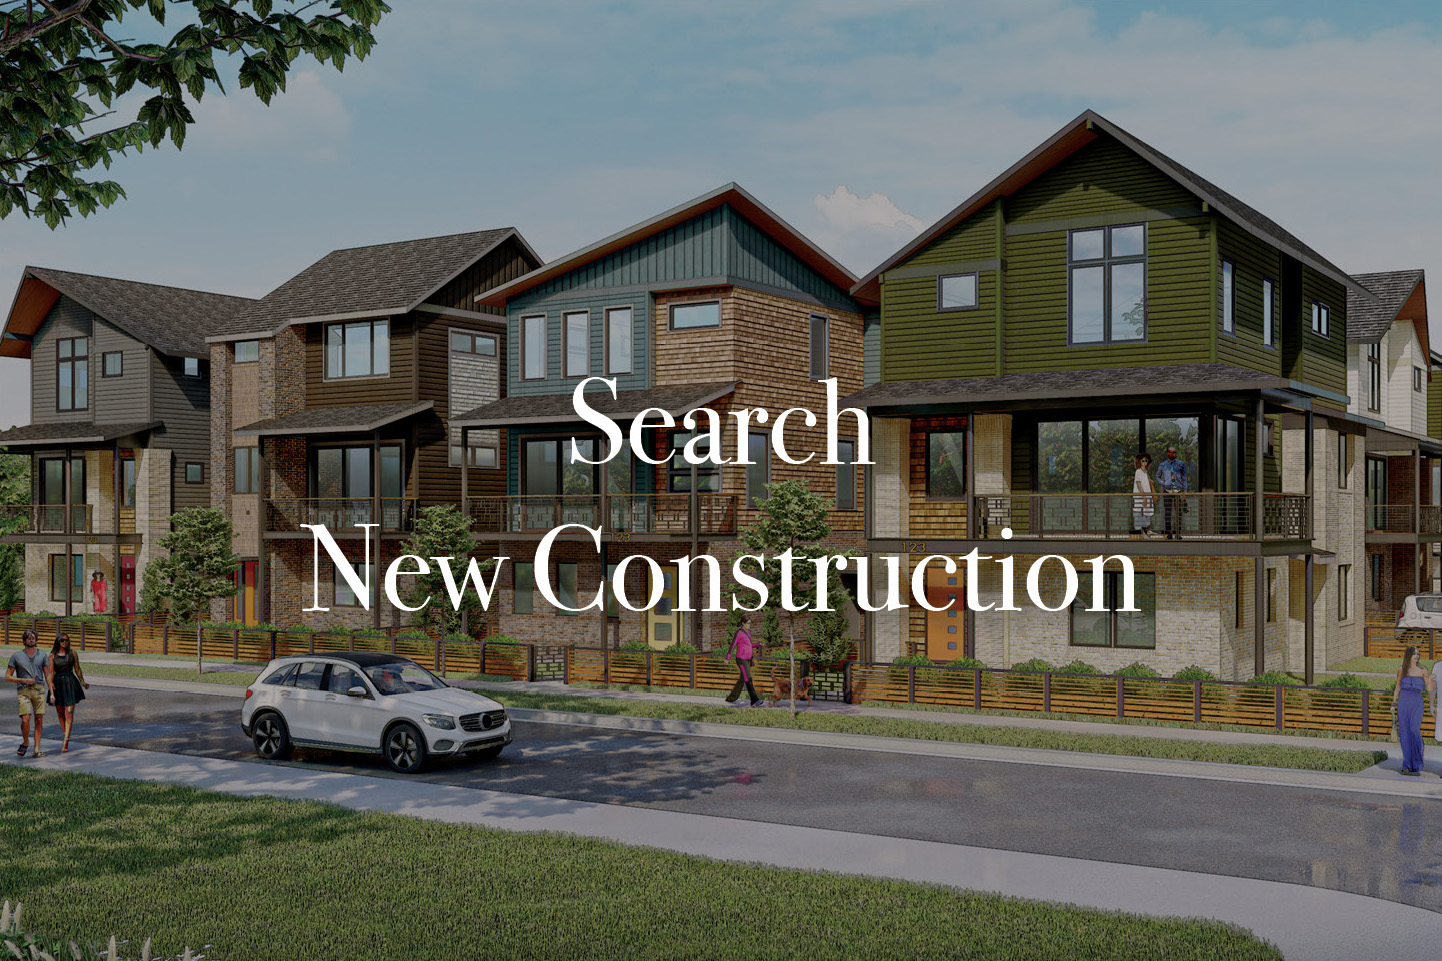 Row of three story townhomes mix of siding brick and stone with the text Search New Construction typed over image in white font